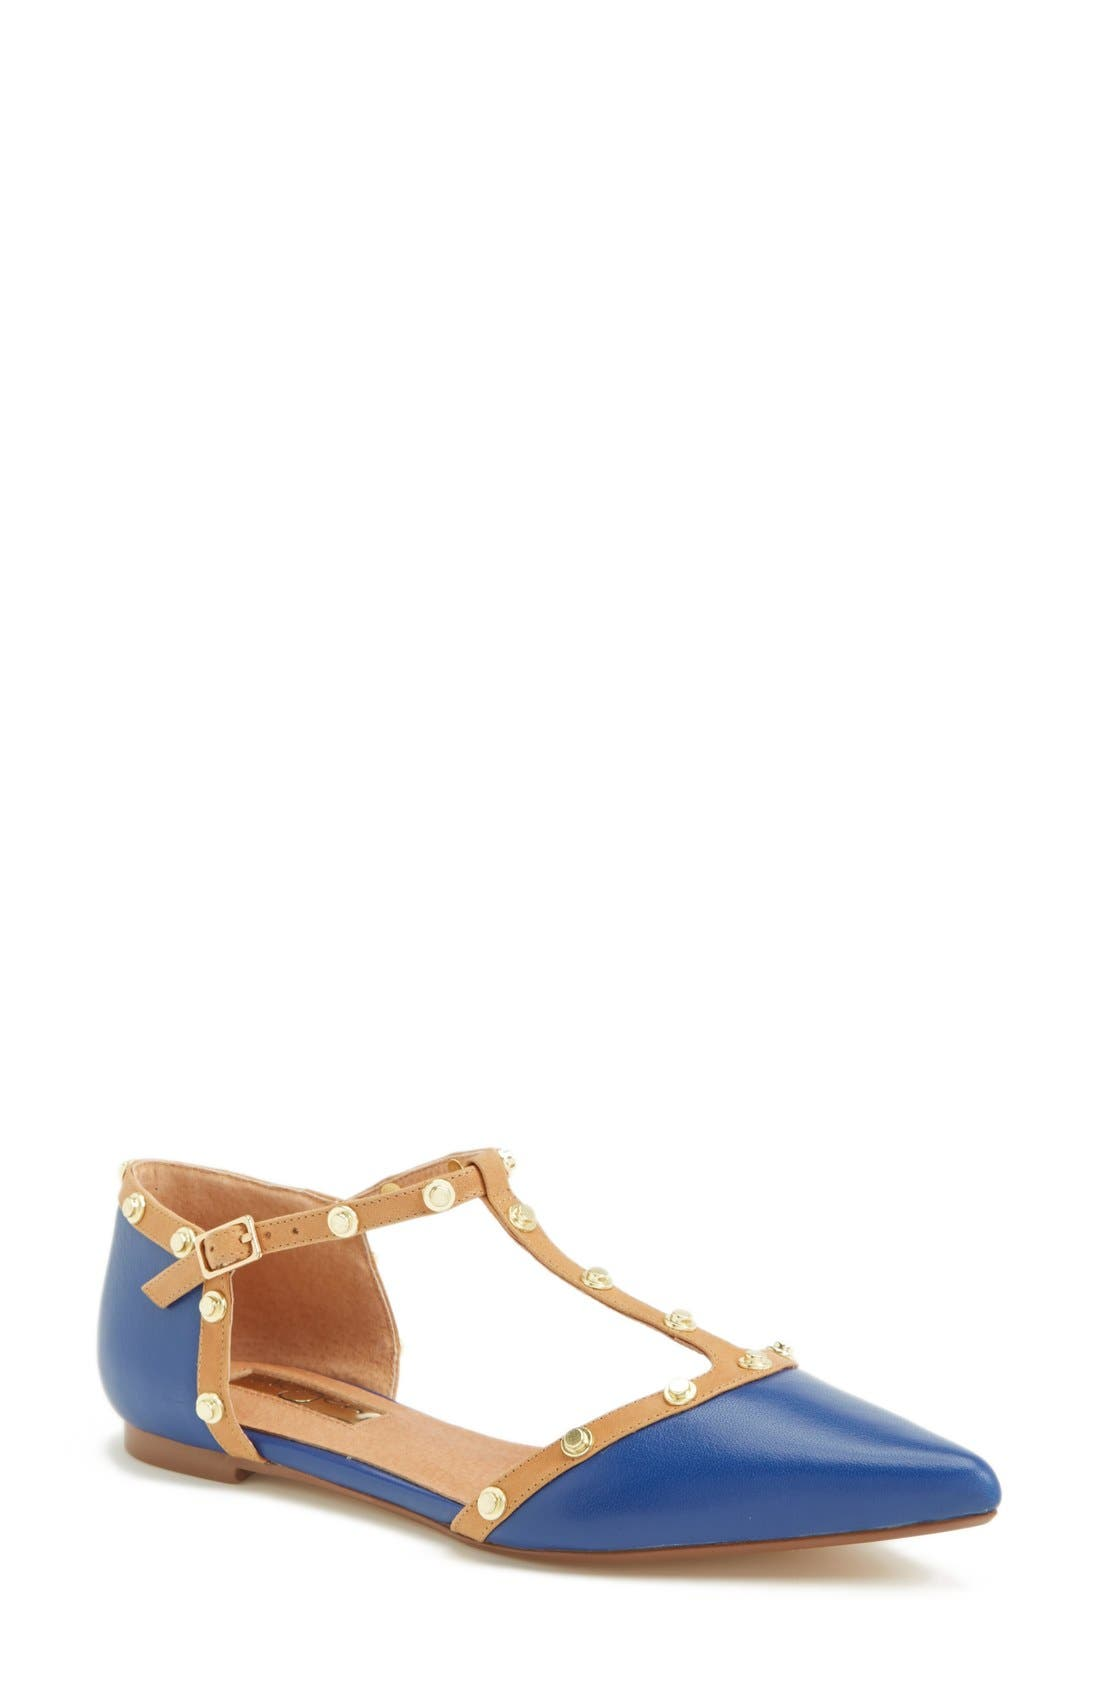 ,                             'Olson' Pointy Toe Studded T-Strap Flat,                             Main thumbnail 45, color,                             405